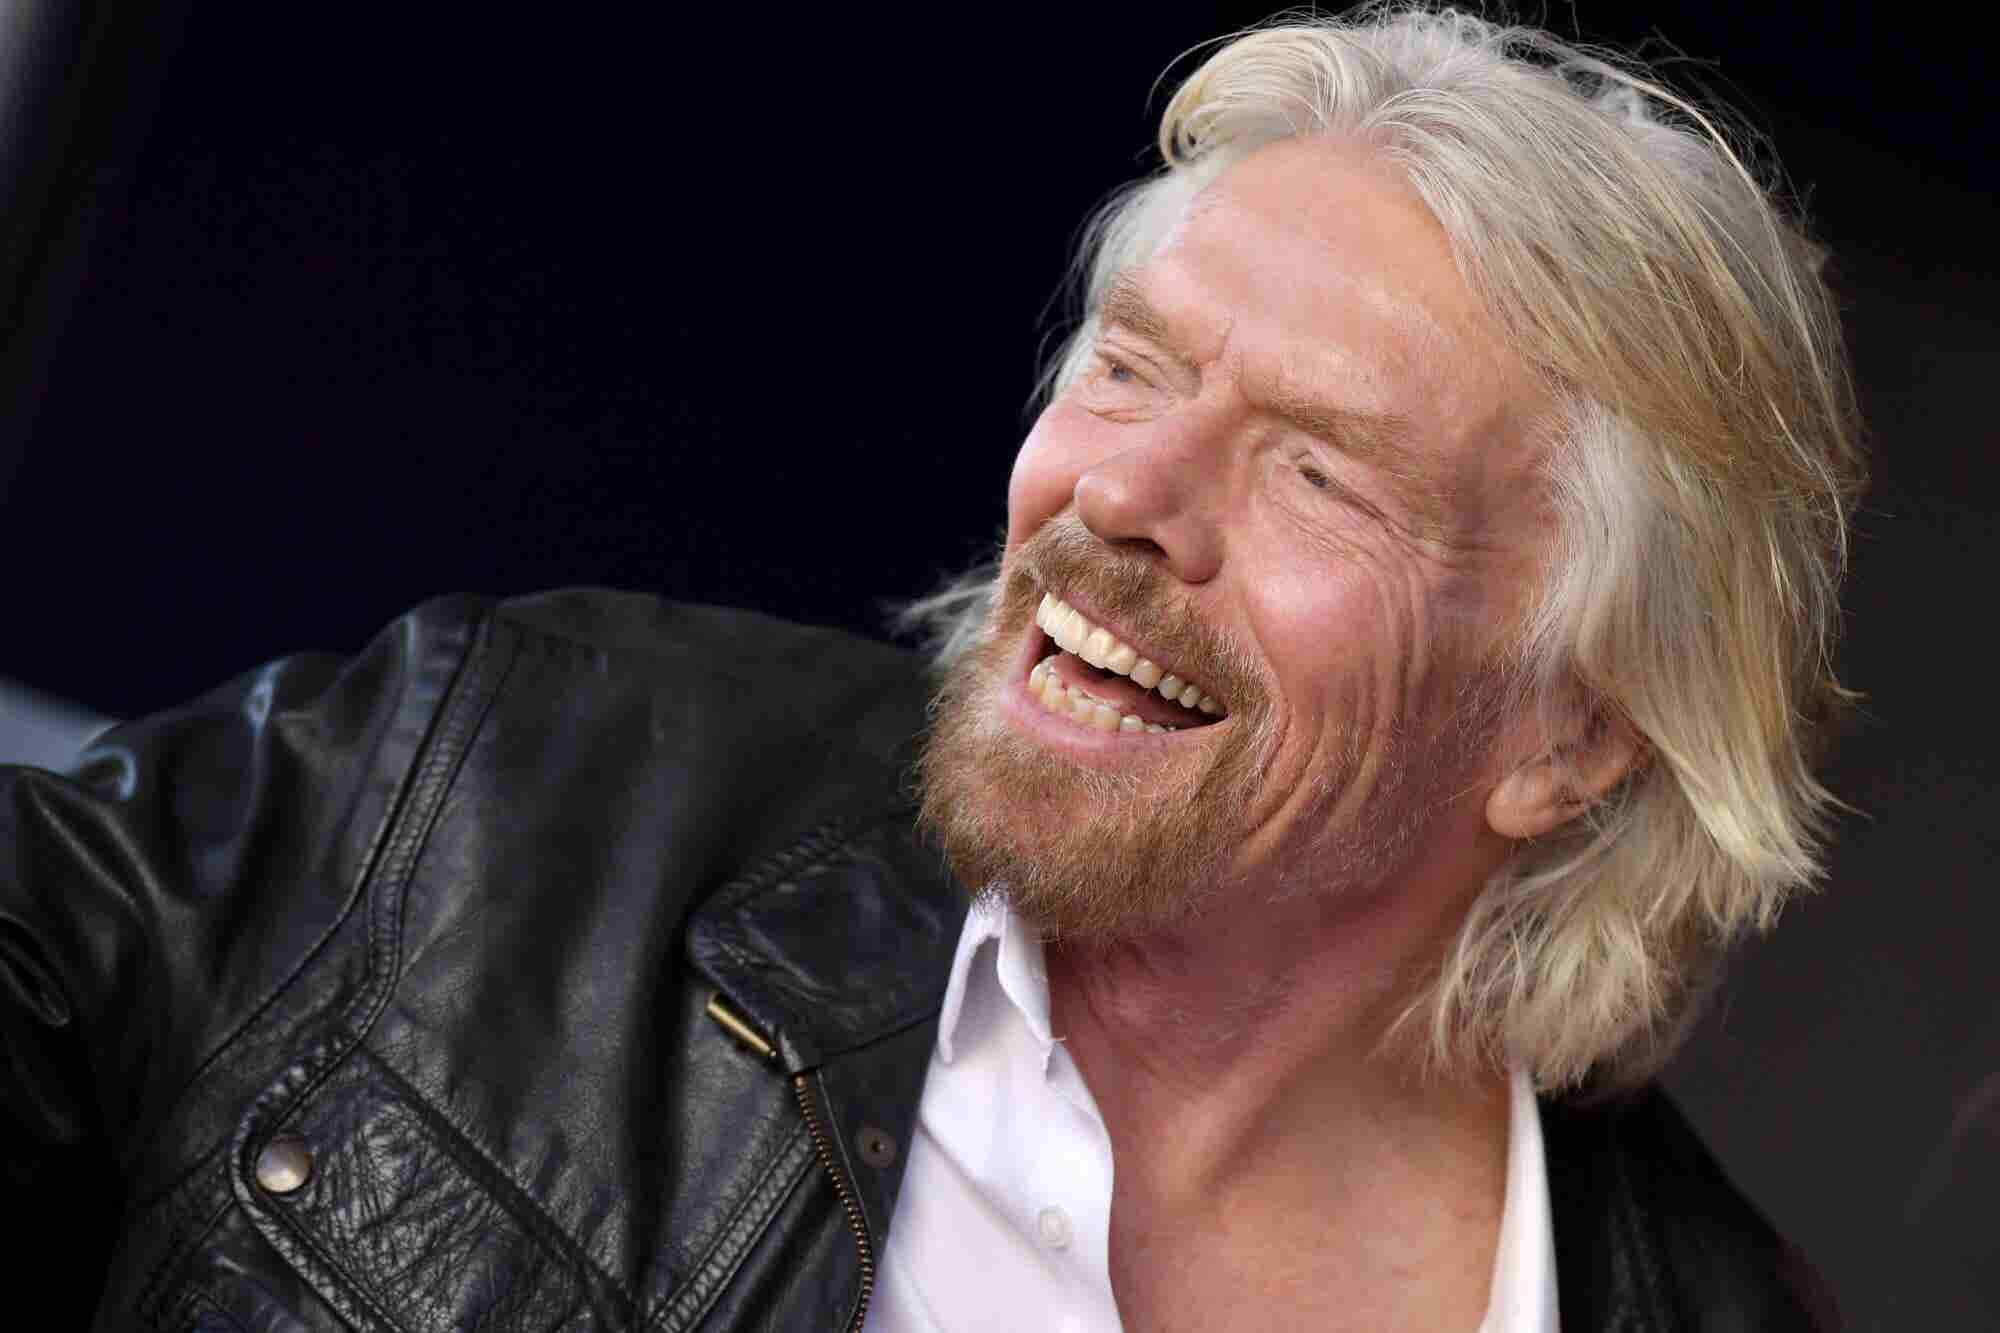 On a Scale of 1 to 10, Compared to Richard Branson, How Relatable Are You?